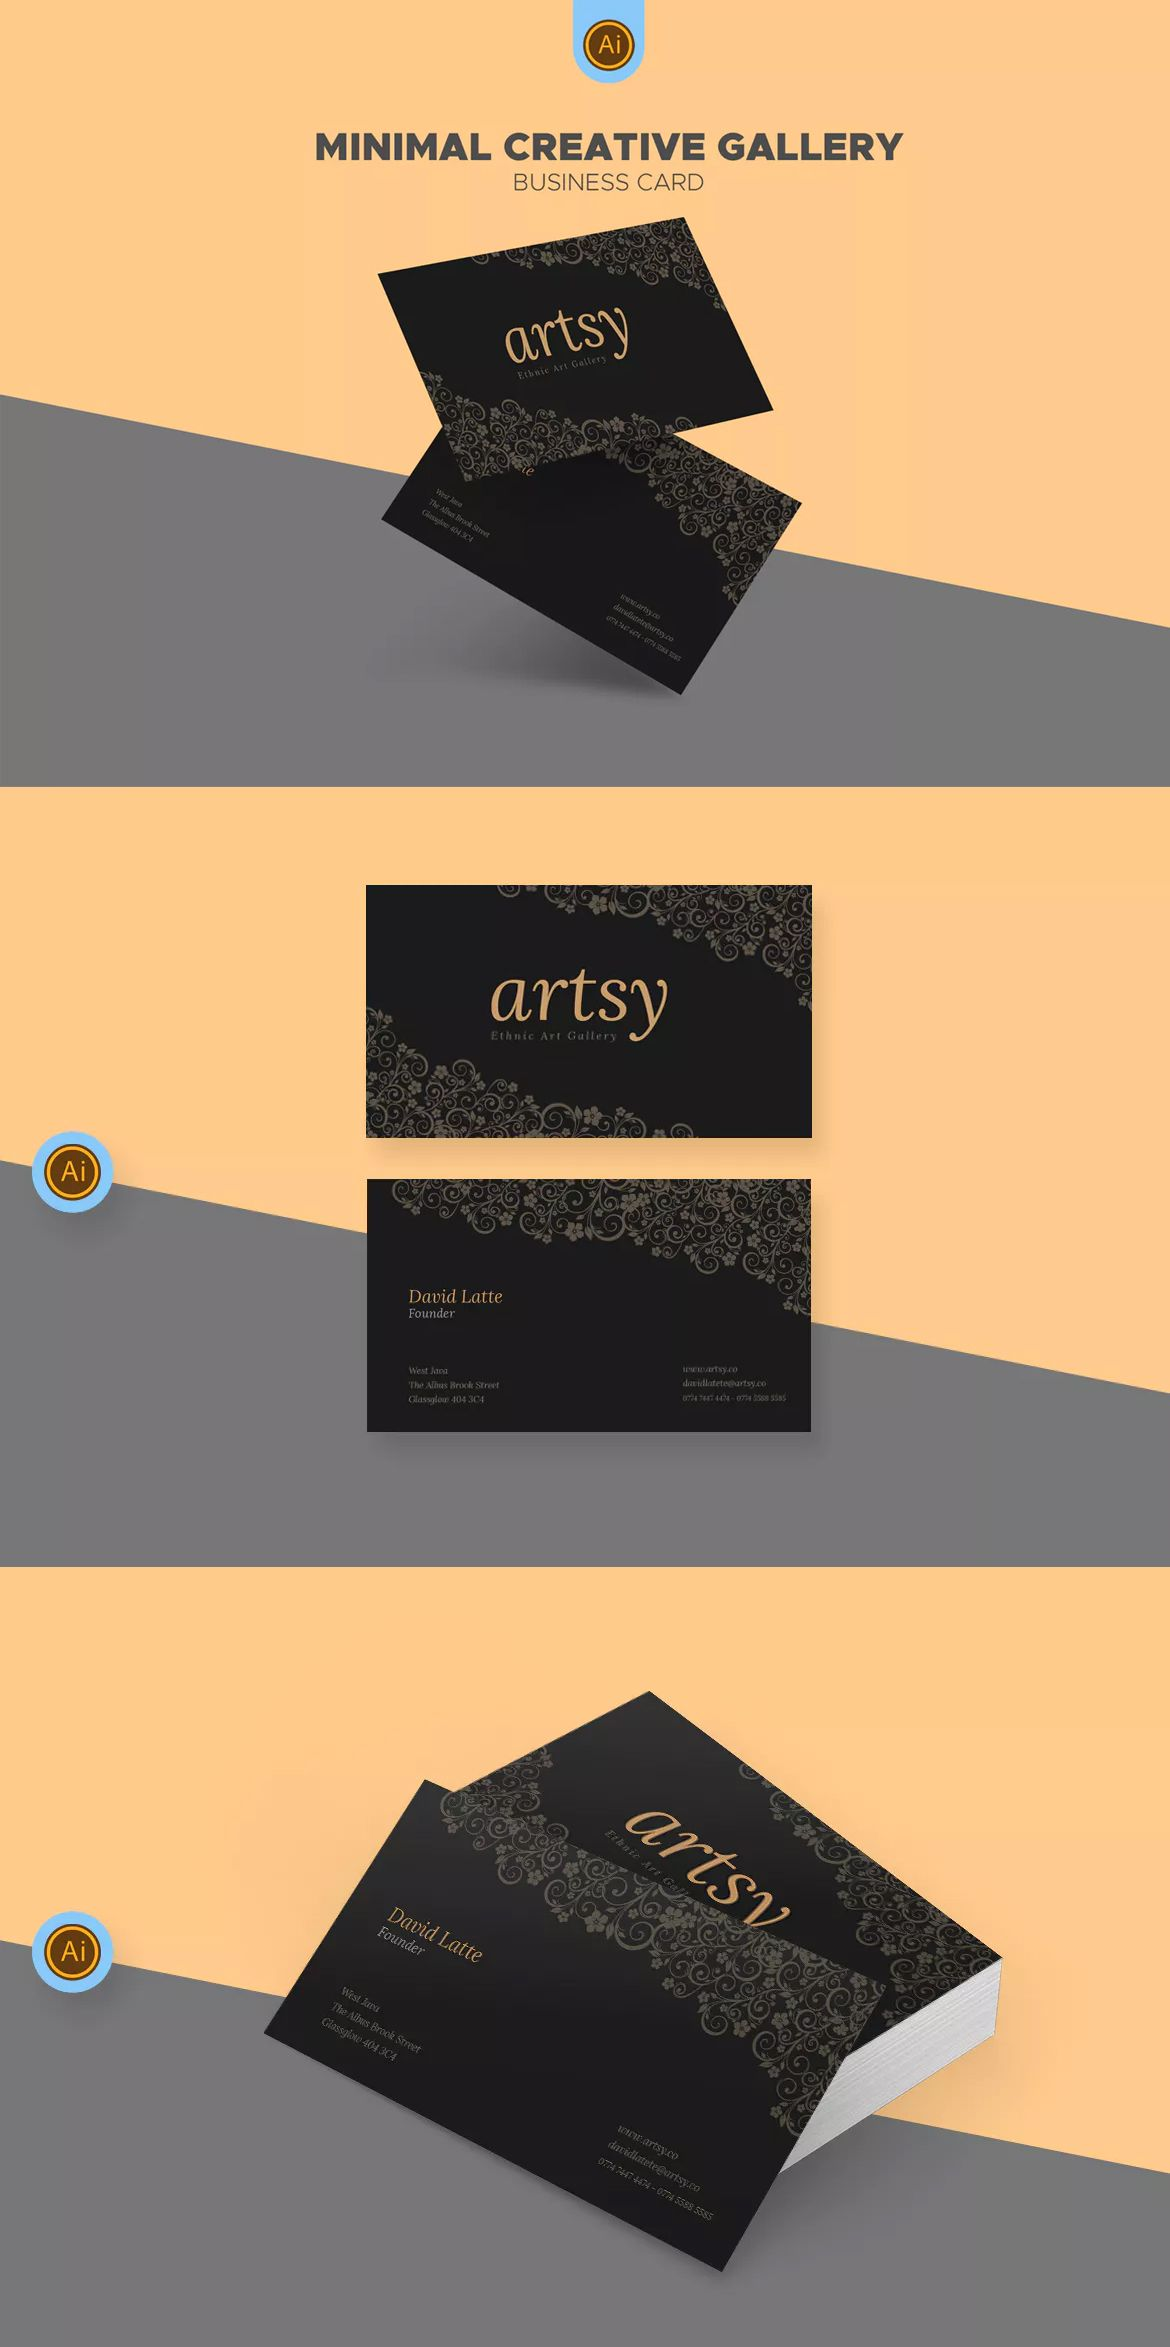 Art gallery shop business card template ai eps business card art gallery shop business card template ai eps wajeb Image collections